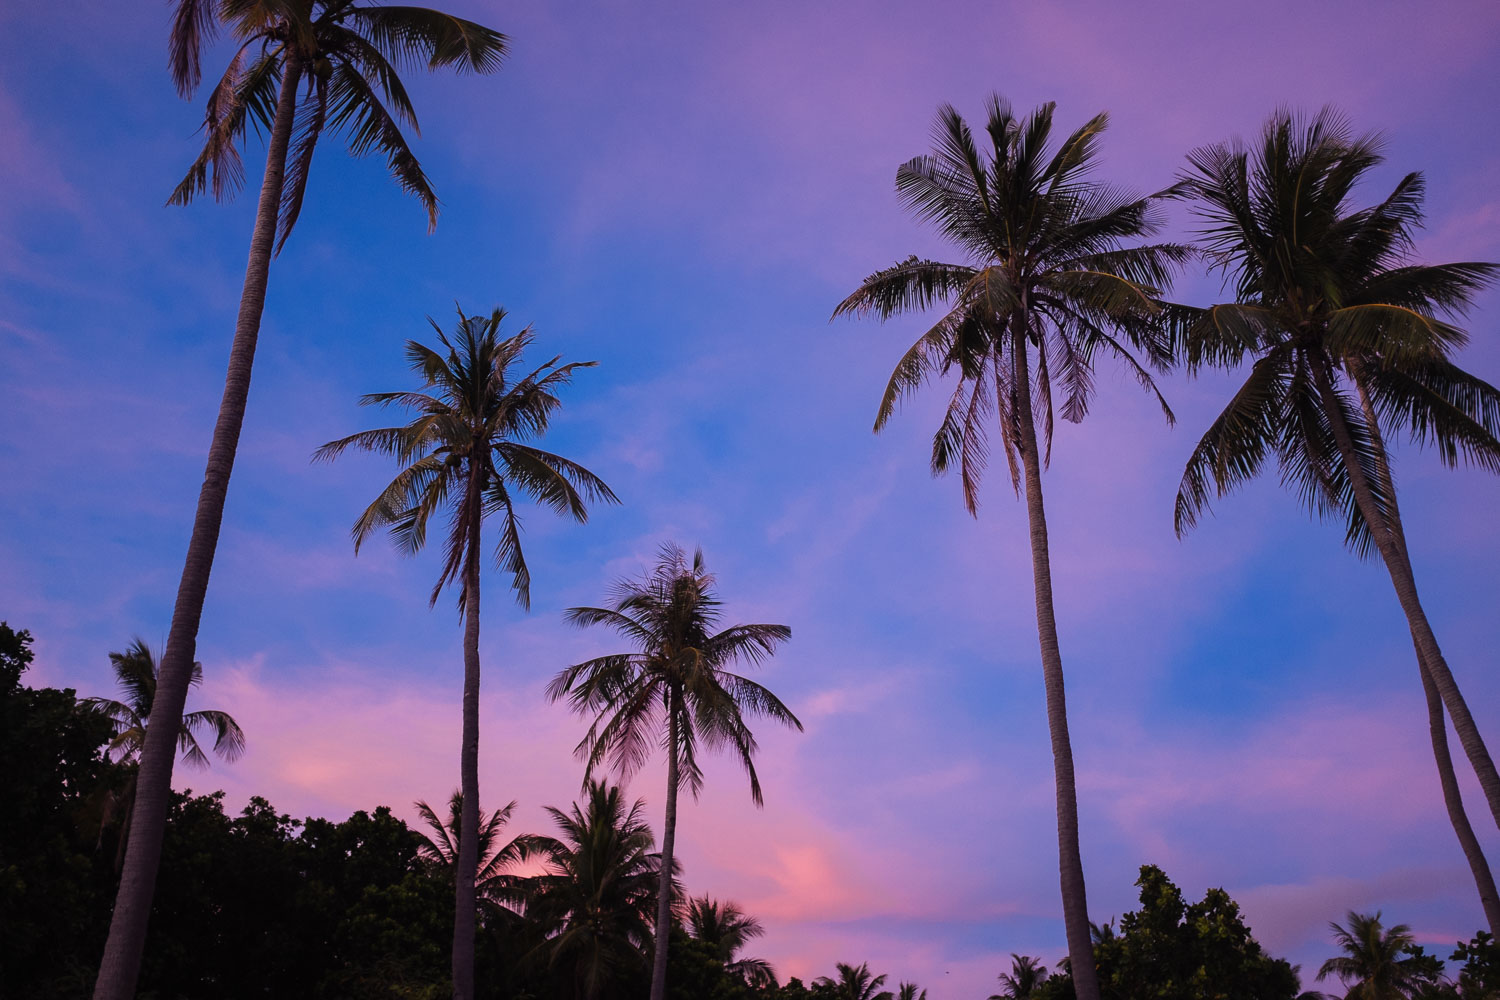 I don't think I'd ever seen pastel sunsets before.